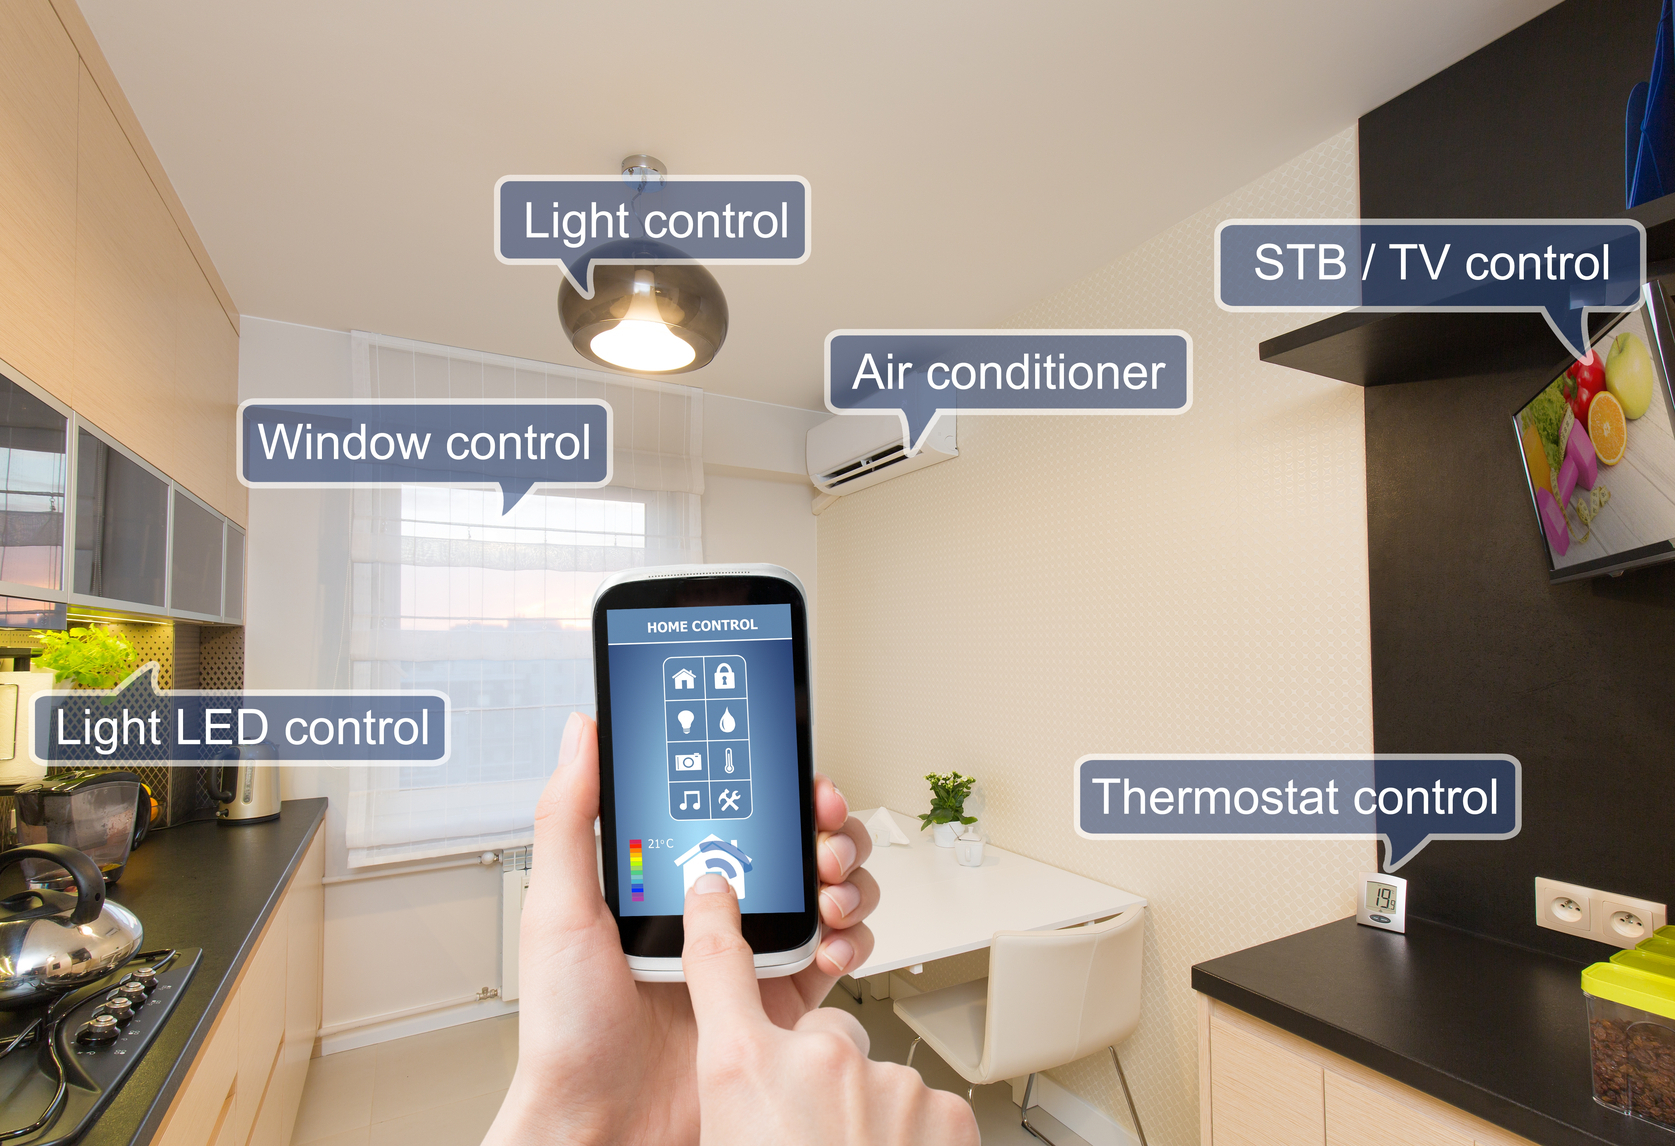 What You Need To Know Before Building Smart Home System - Gearbrain